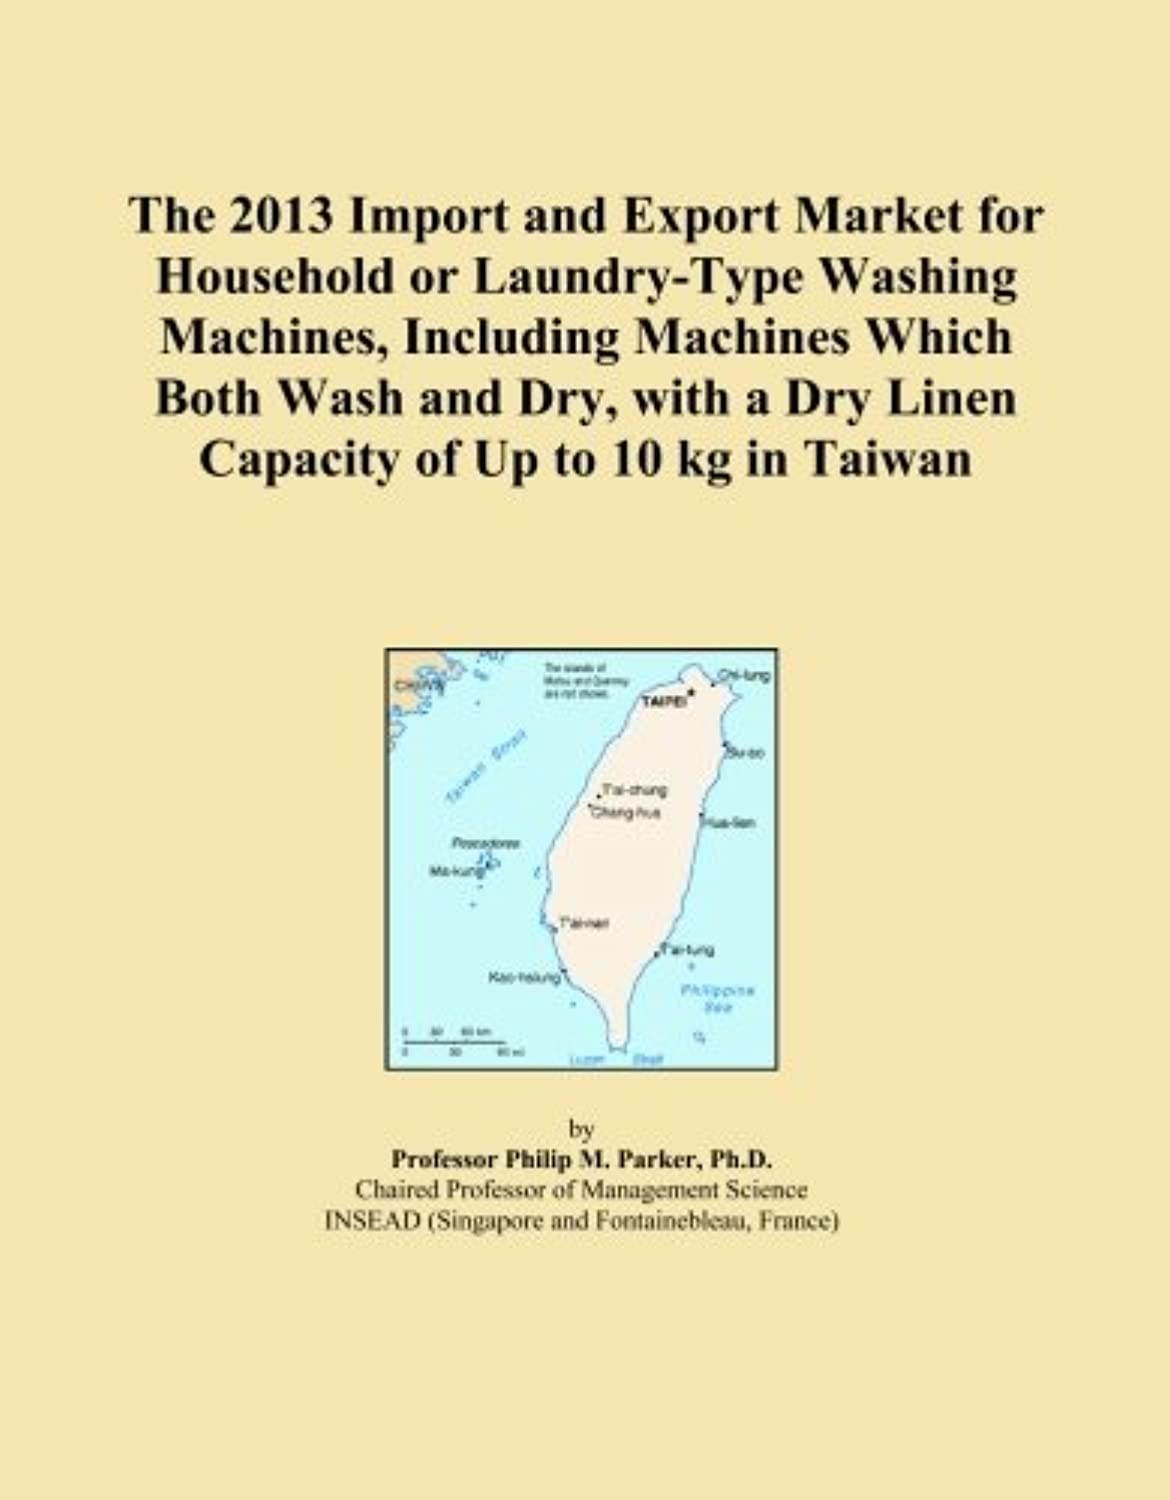 The 2013 Import and Export Market for Household or Laundry-Type Washing Machines, Including Machines Which Both Wash and Dry, with a Dry Linen Capacity of Up to 10 kg in Taiwan